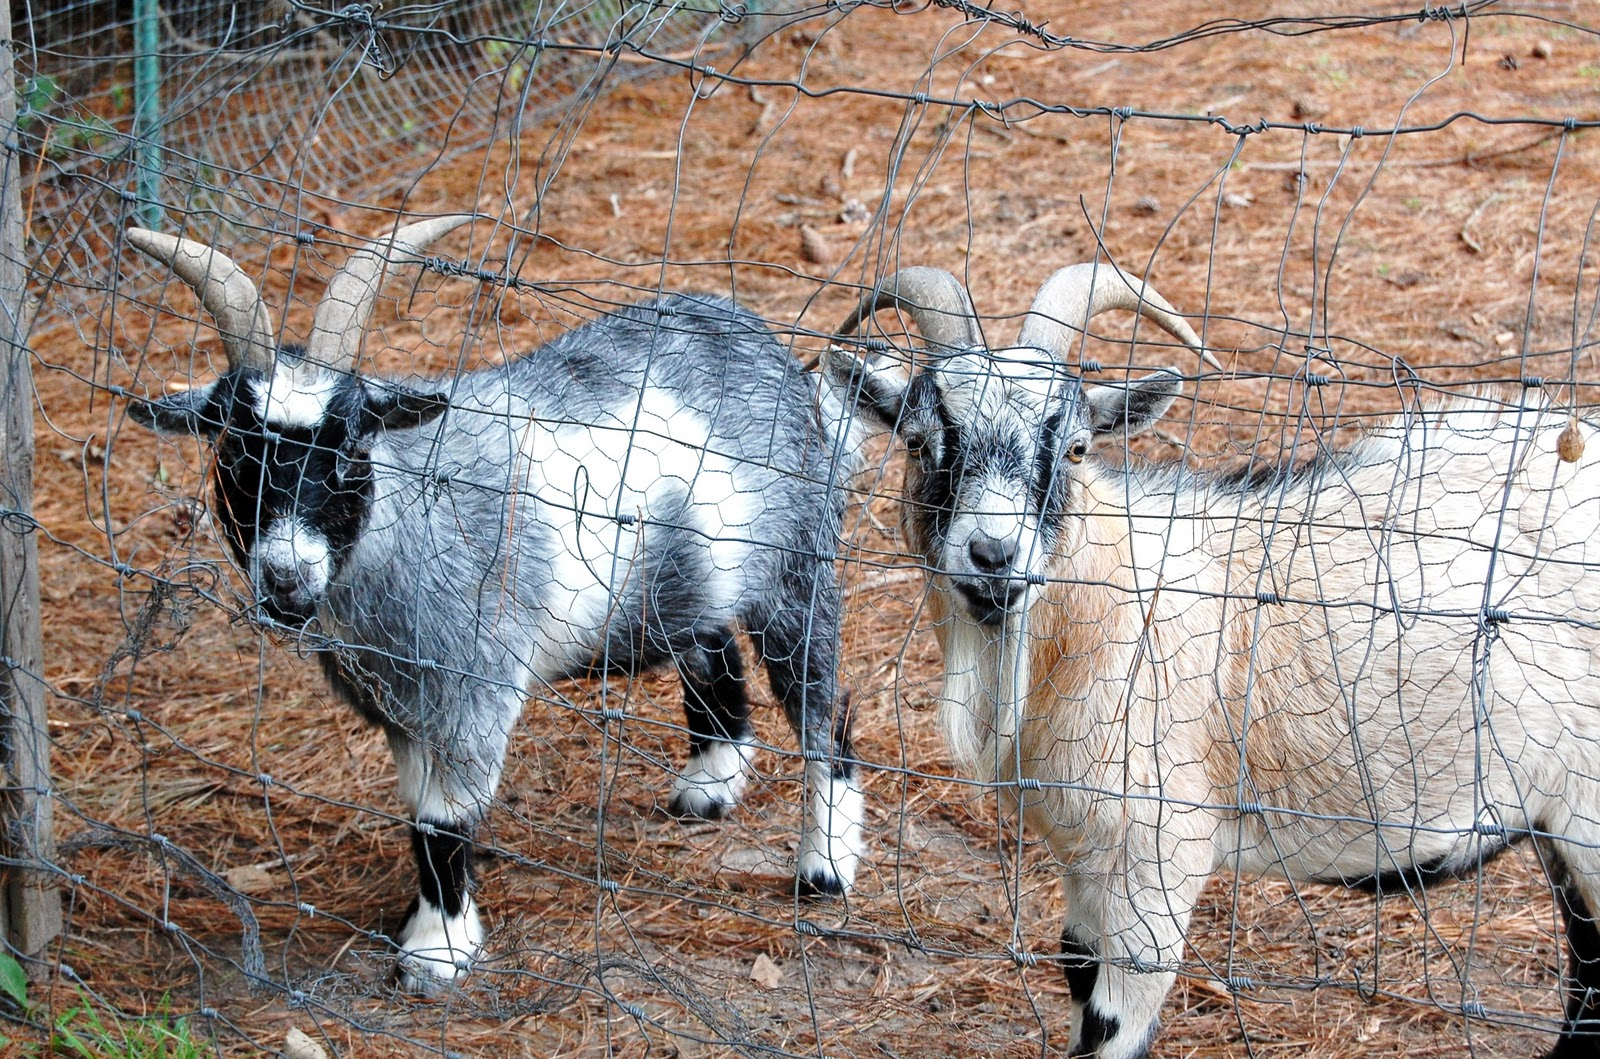 goats vs goats Boer goat prices are still relatively high but are approaching what you'd pay for a quality registered angora or registered dairy goat they are nowhere near the steep amounts paid during the winter and spring of 1994, when a bit of buying frenzy took hold of some goat breeders and exotics traders.